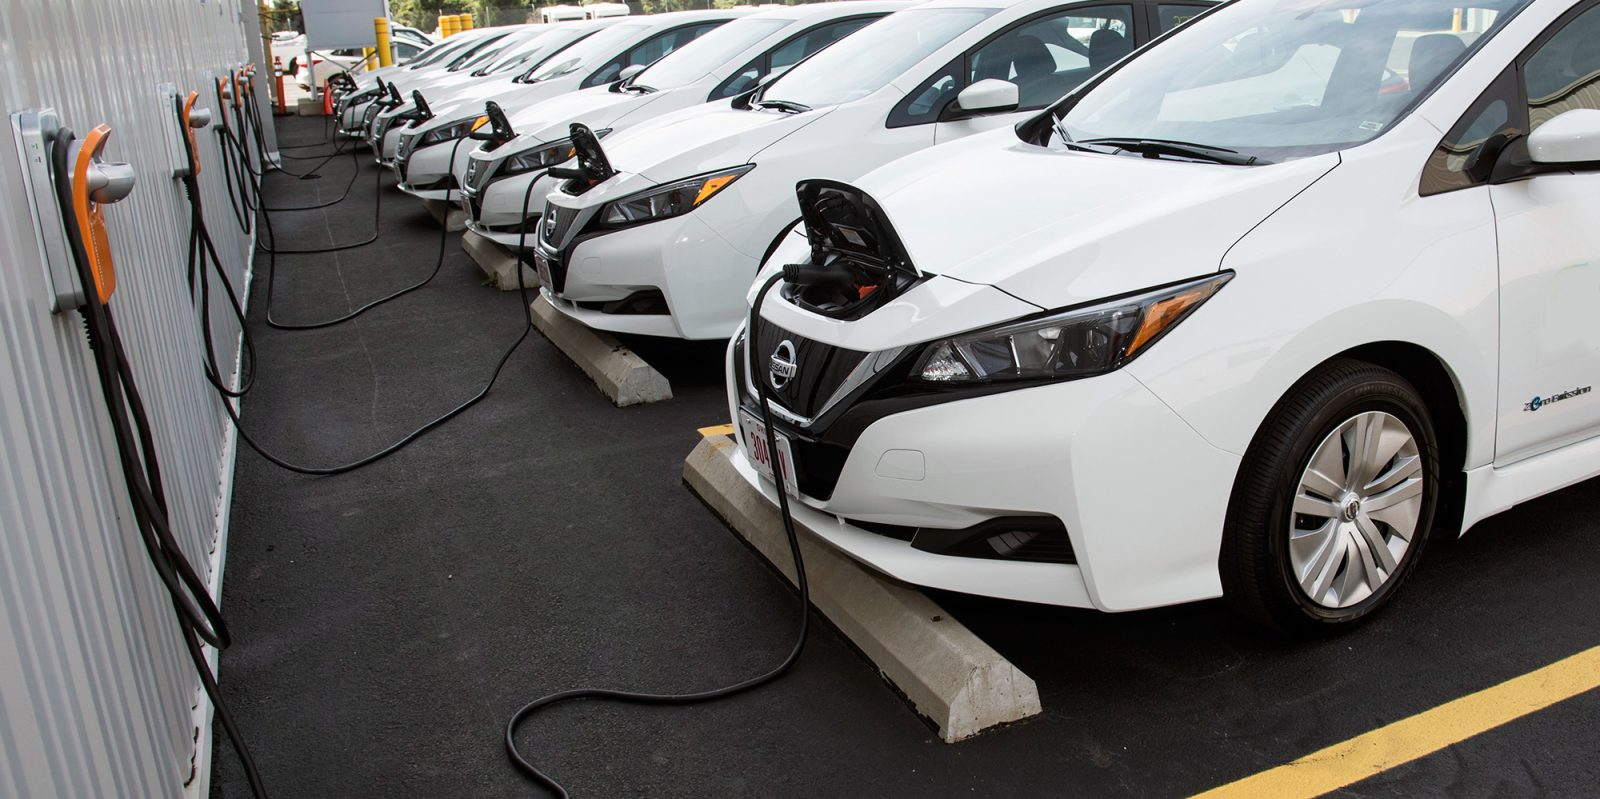 8 lessons about EV battery health from 6,300 electric cars